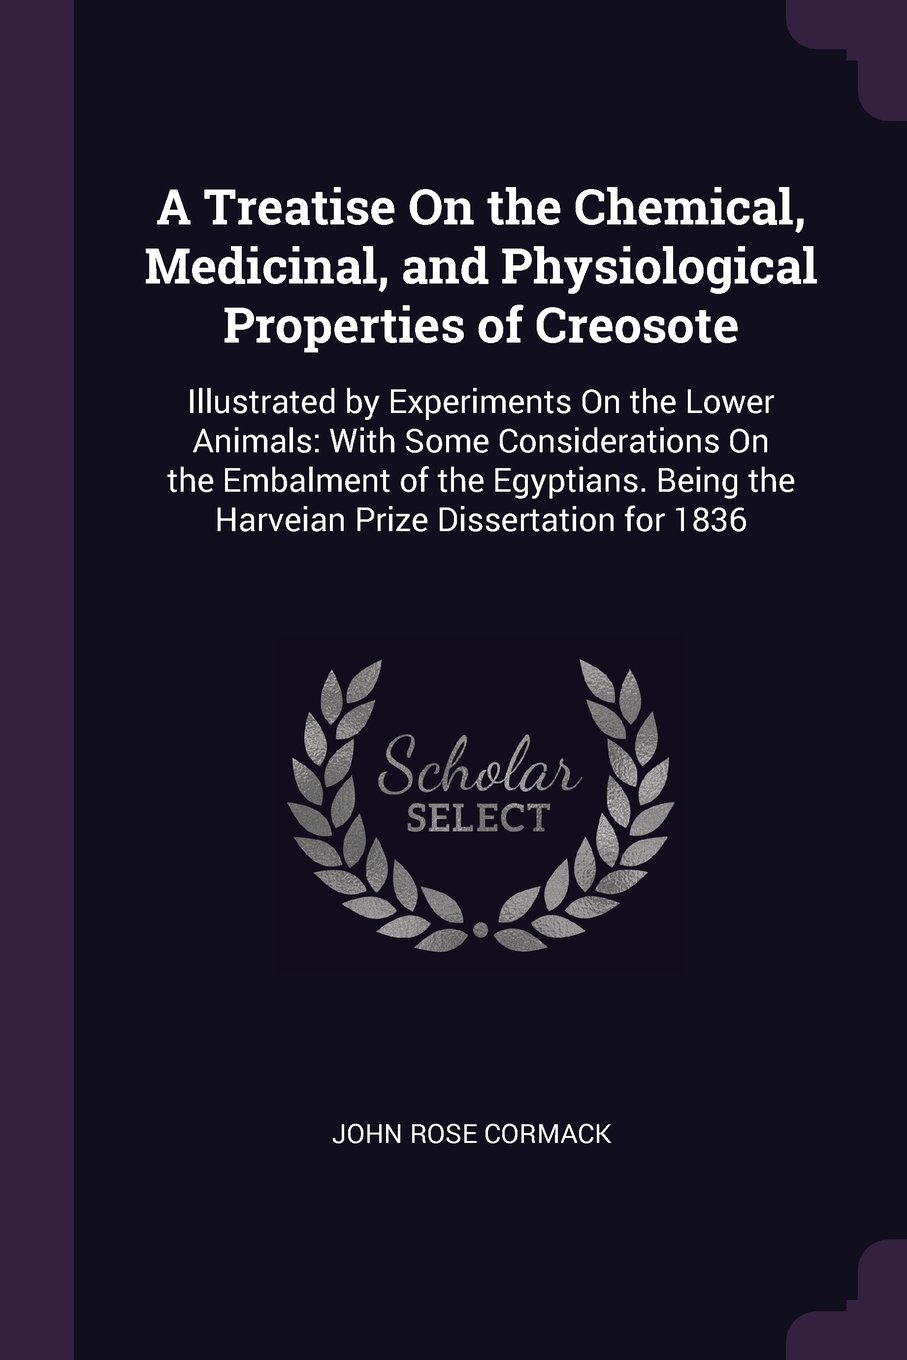 Download A Treatise On the Chemical, Medicinal, and Physiological Properties of Creosote: Illustrated by Experiments On the Lower Animals: With Some ... the Harveian Prize Dissertation for 1836 pdf